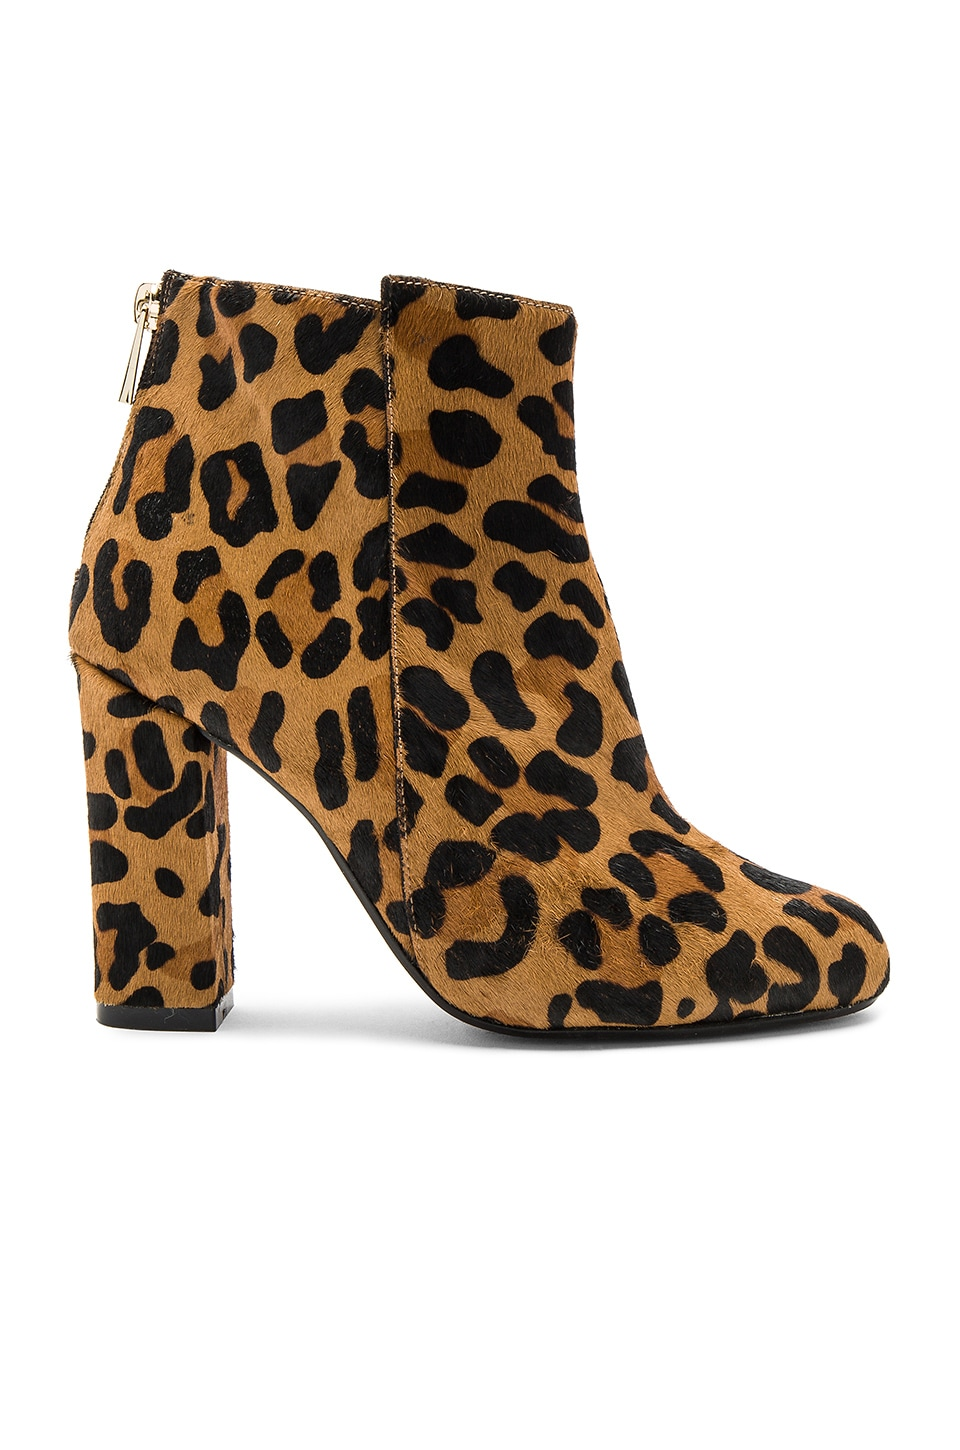 RAYE Ivy Pony Hair Bootie in Dark Tan Leopard